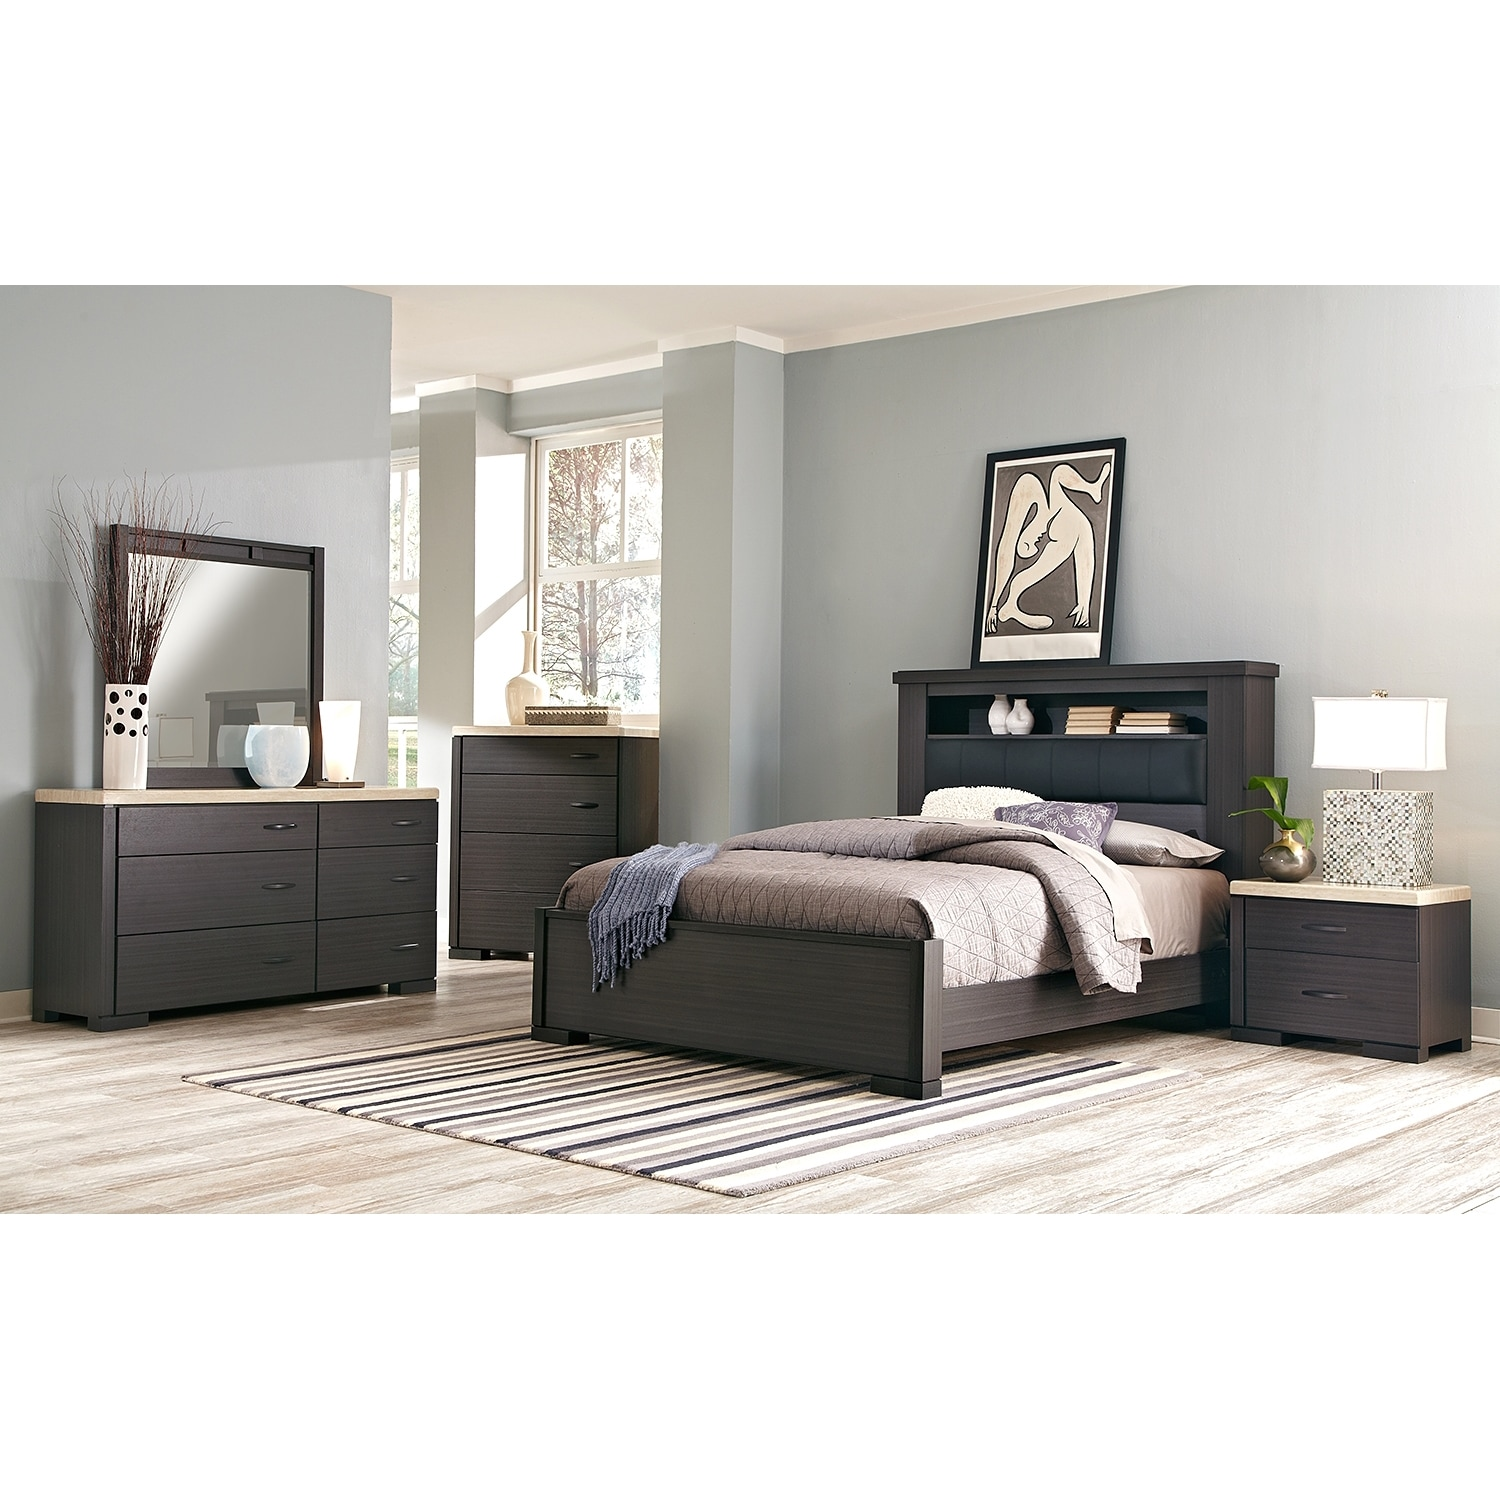 set bedroom city edfans sets value style com homelk furniture house breathtaking of